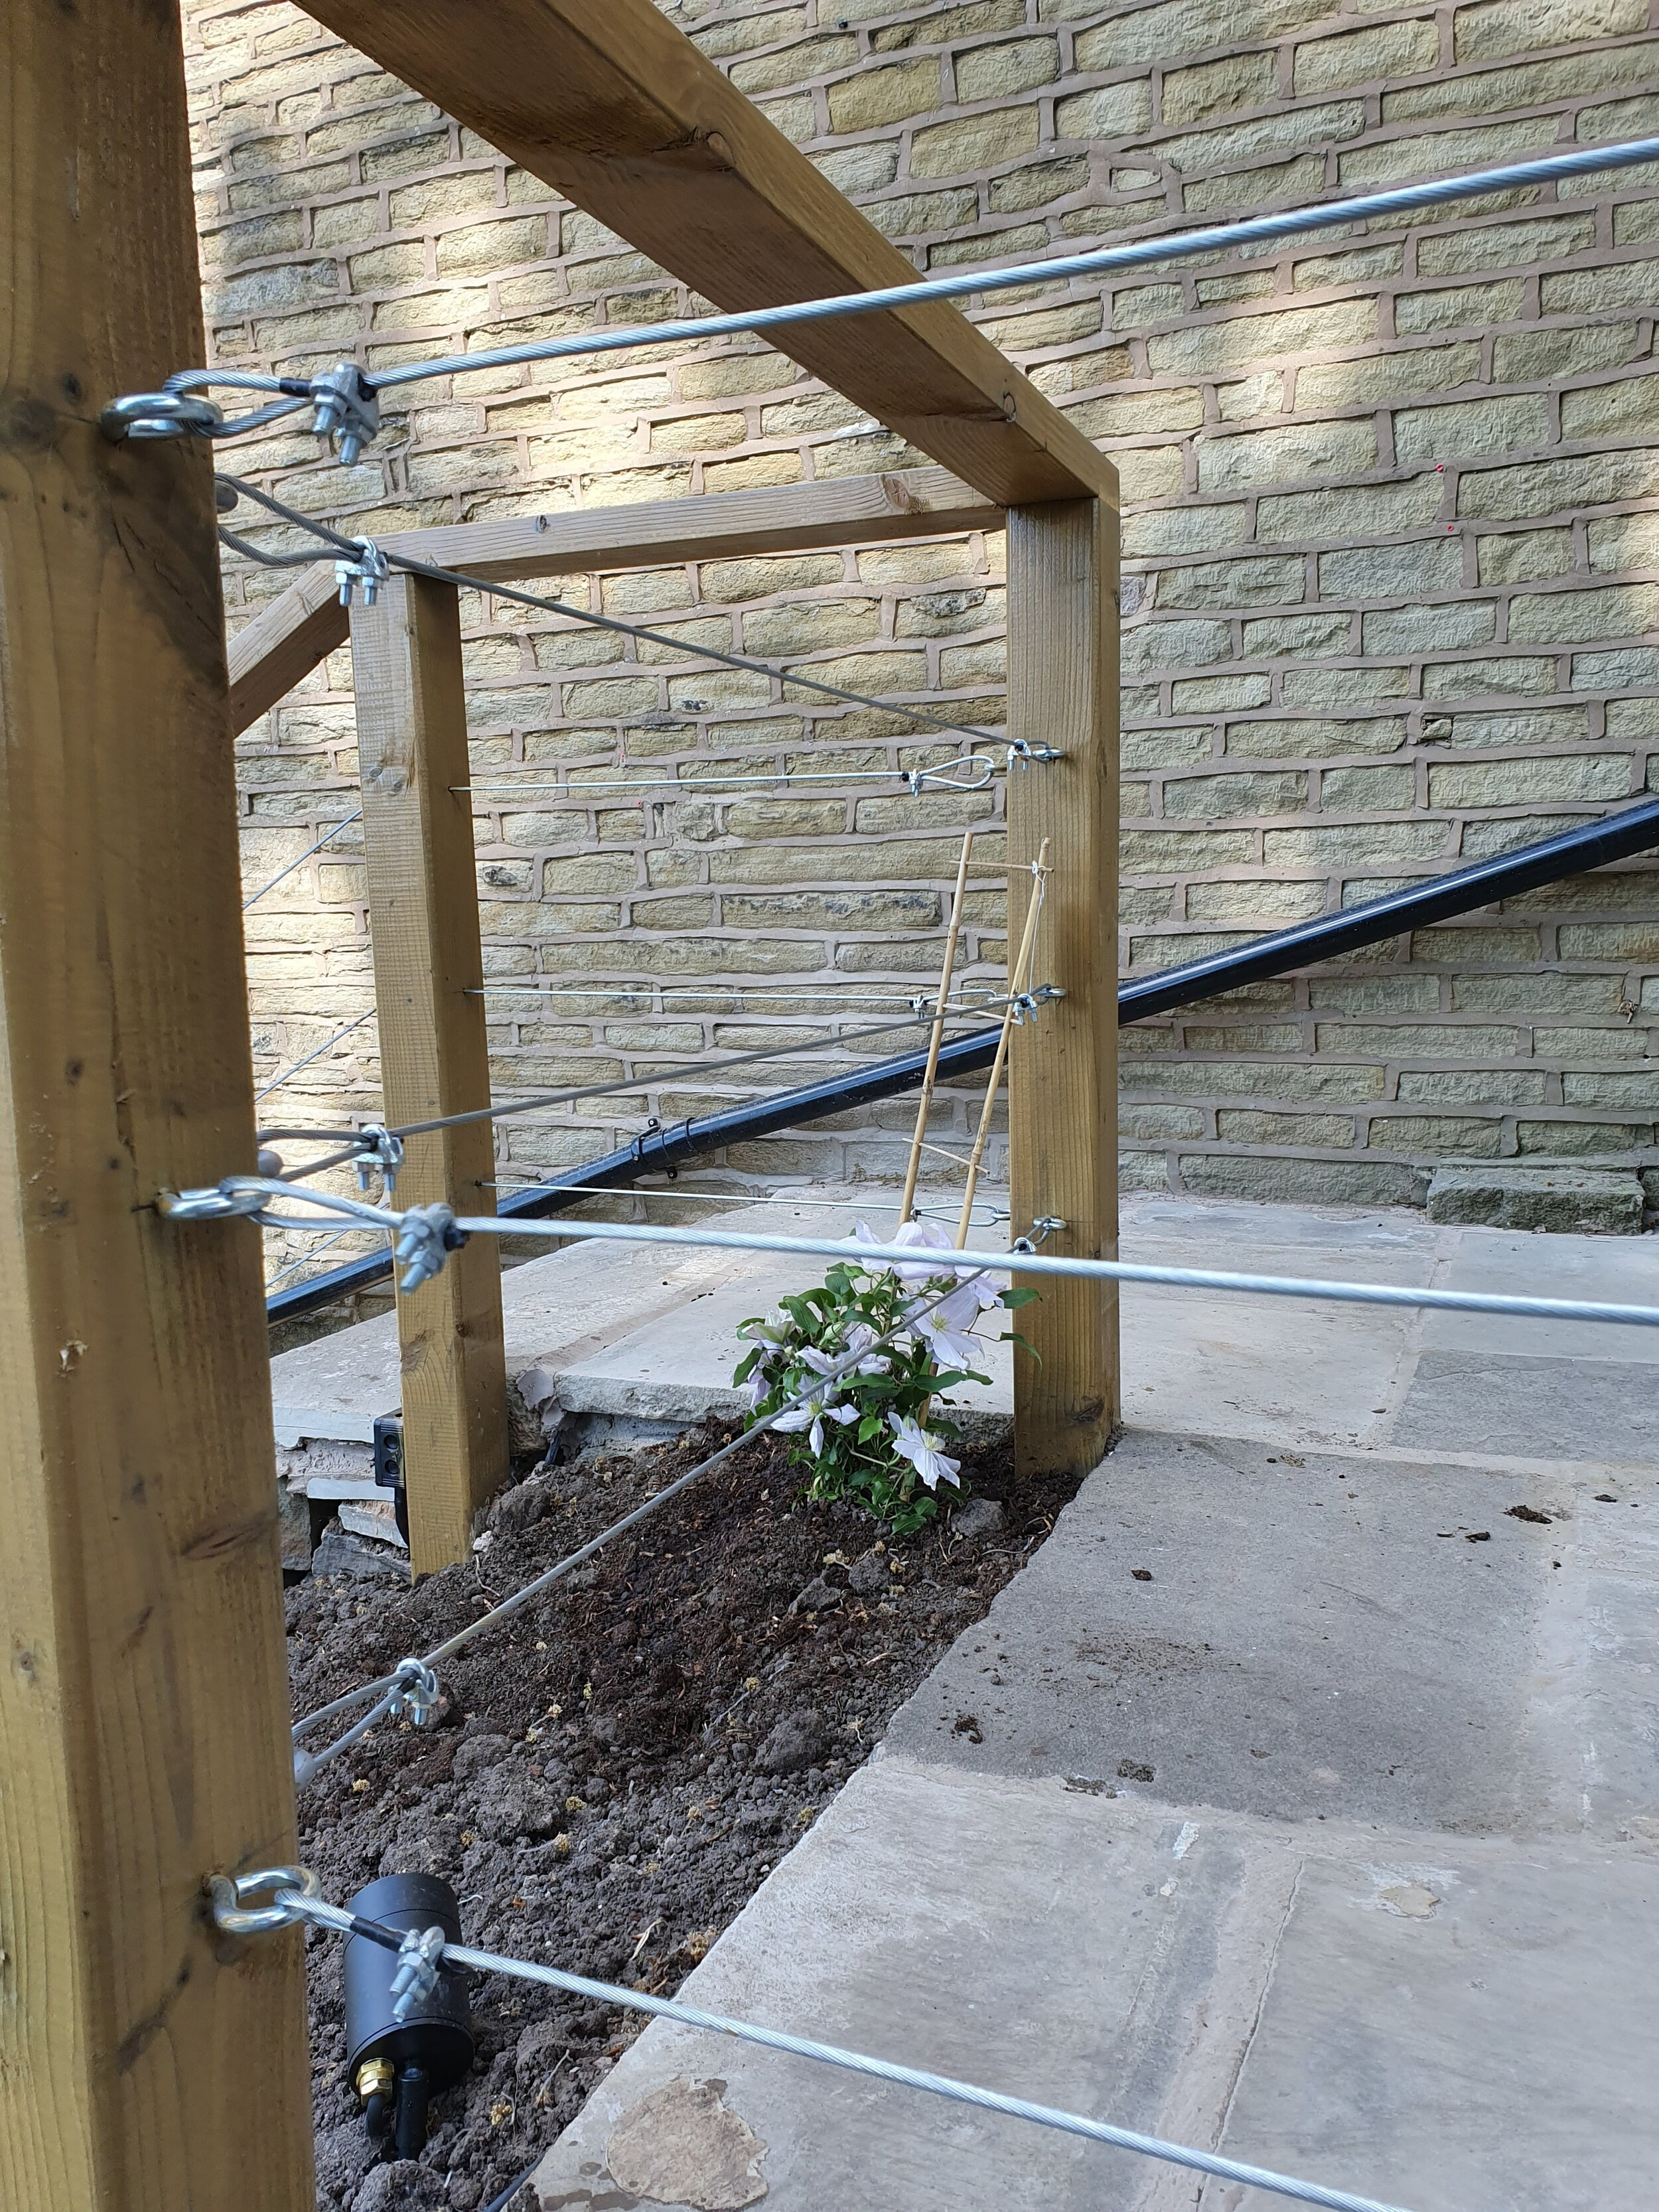 Steve Bailey used our 4mm wire rope, welded eyebolts and rope grips to create this modern barrier.